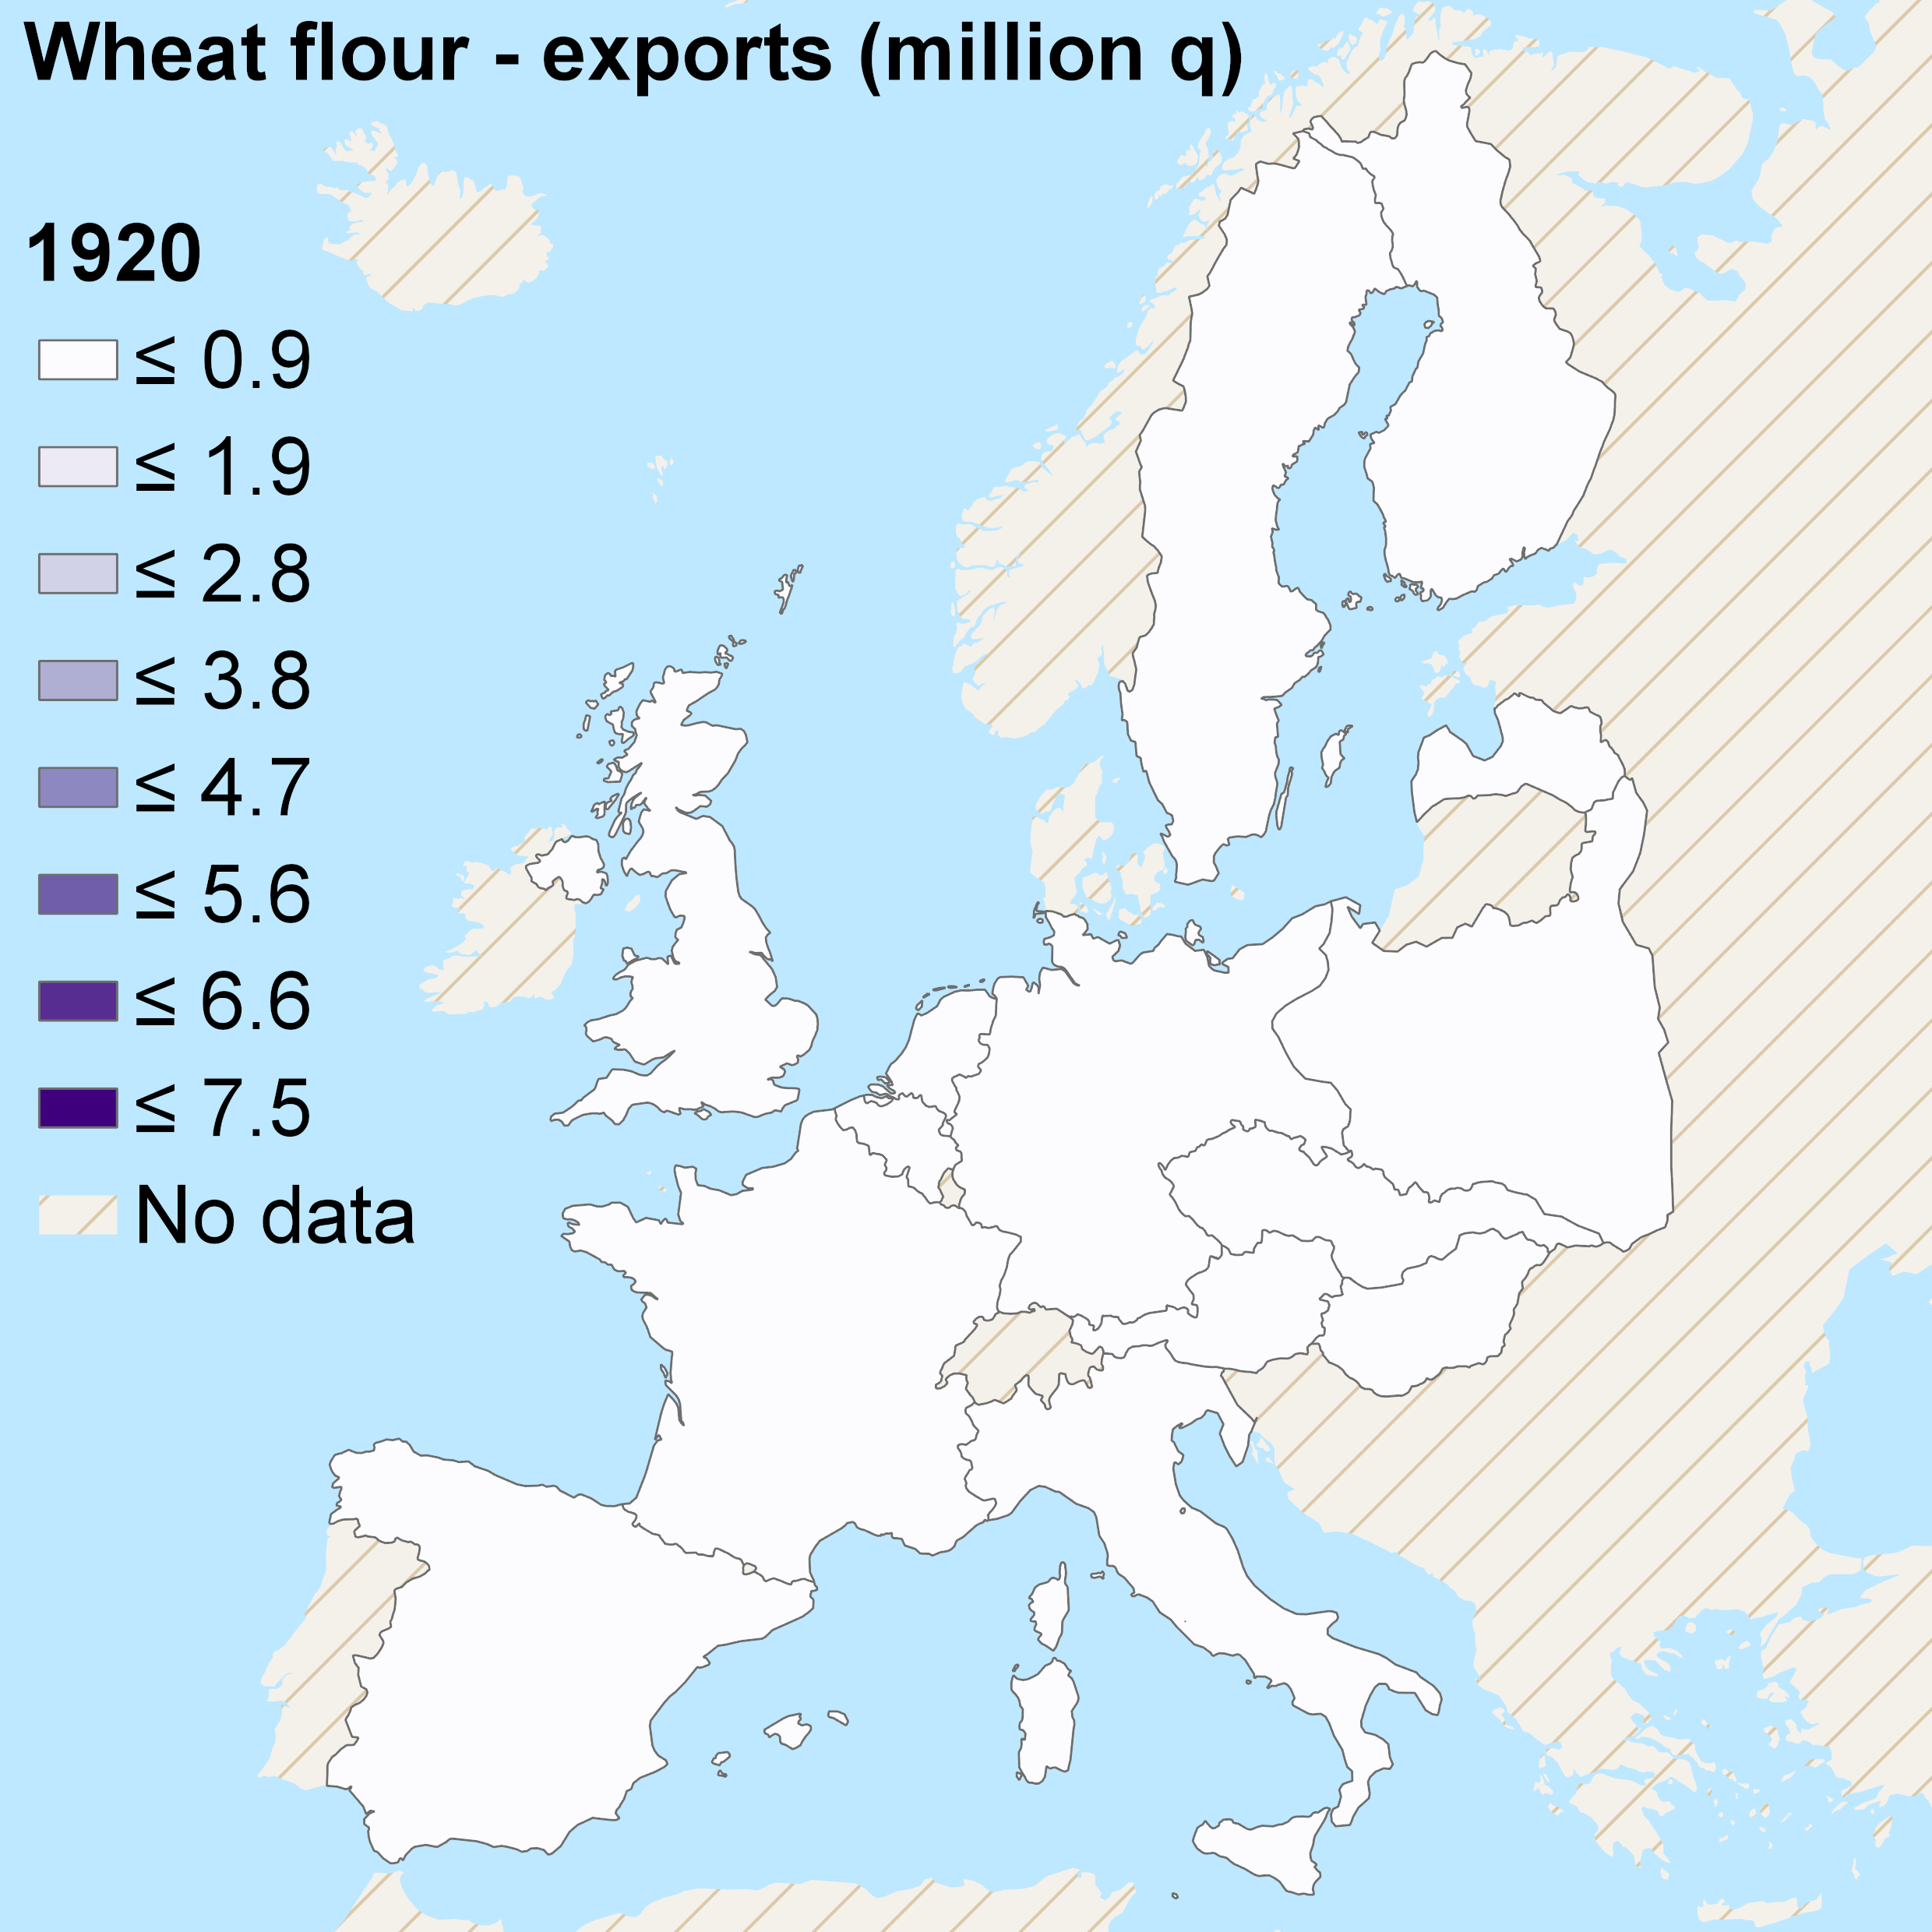 wheat-flour-exports-1920-v2